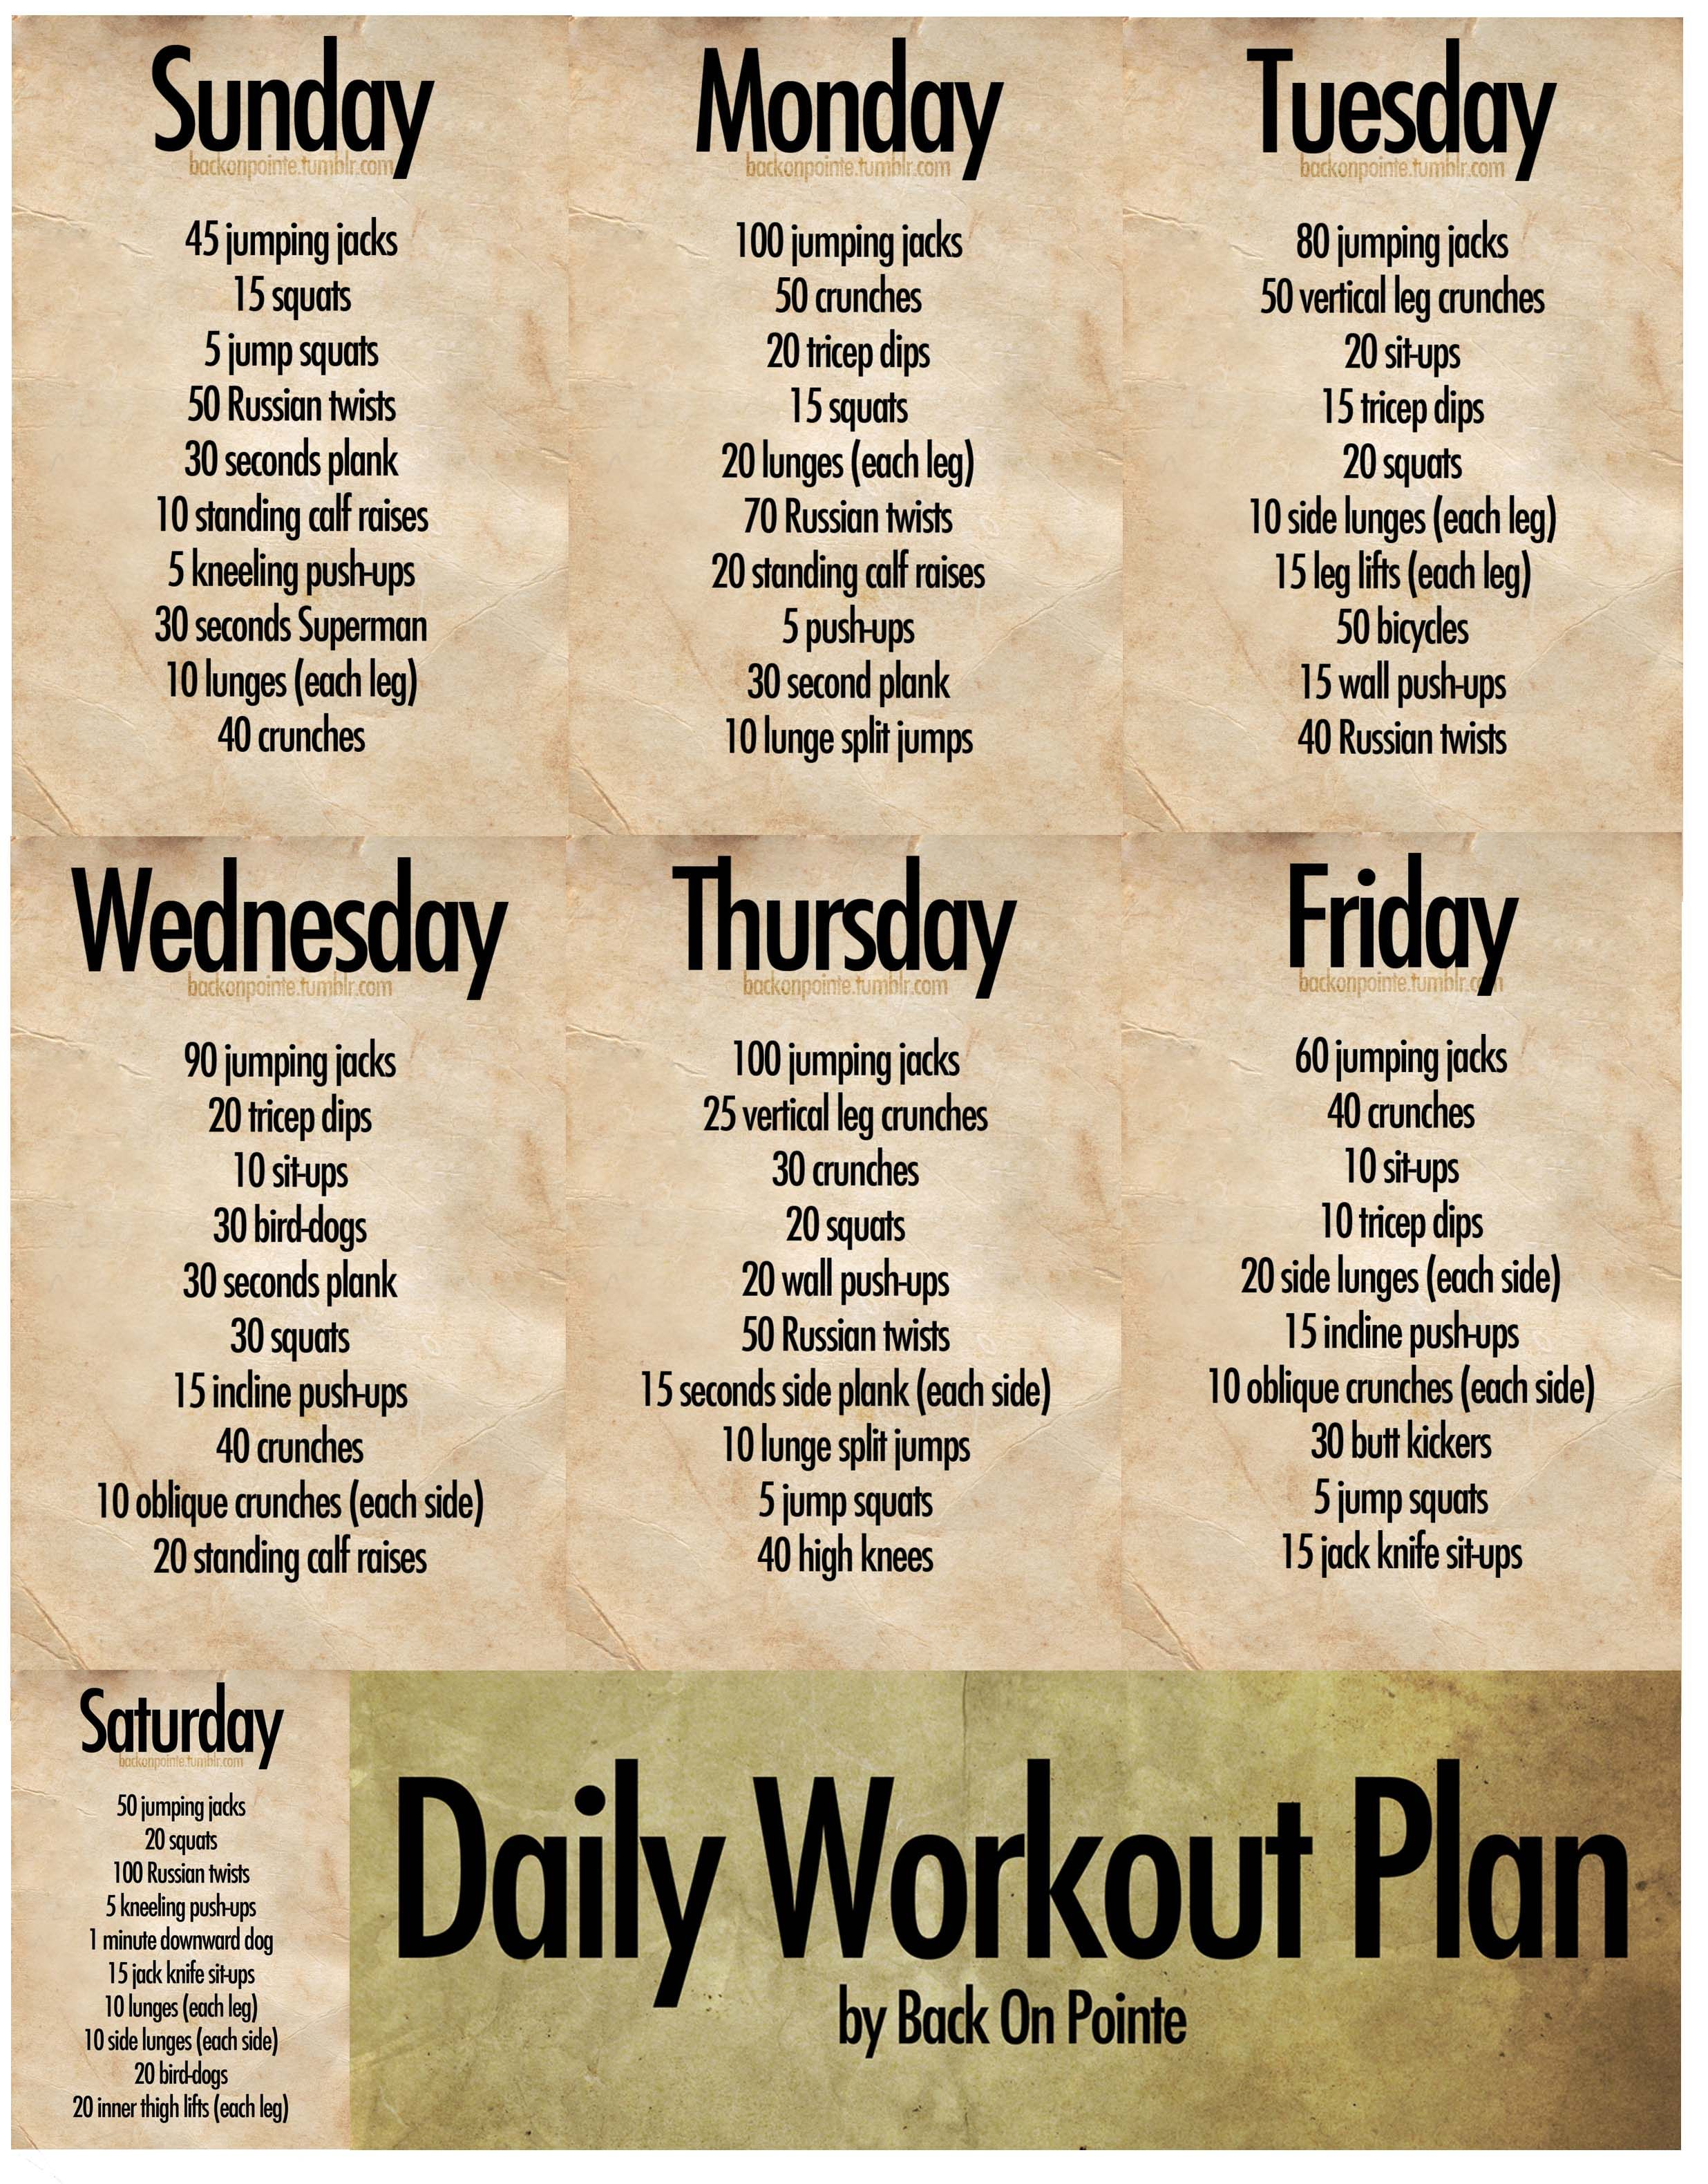 Daily Work Out Plan Backonpointetumblr Post 15968075542 A Exercise Do These Exercises